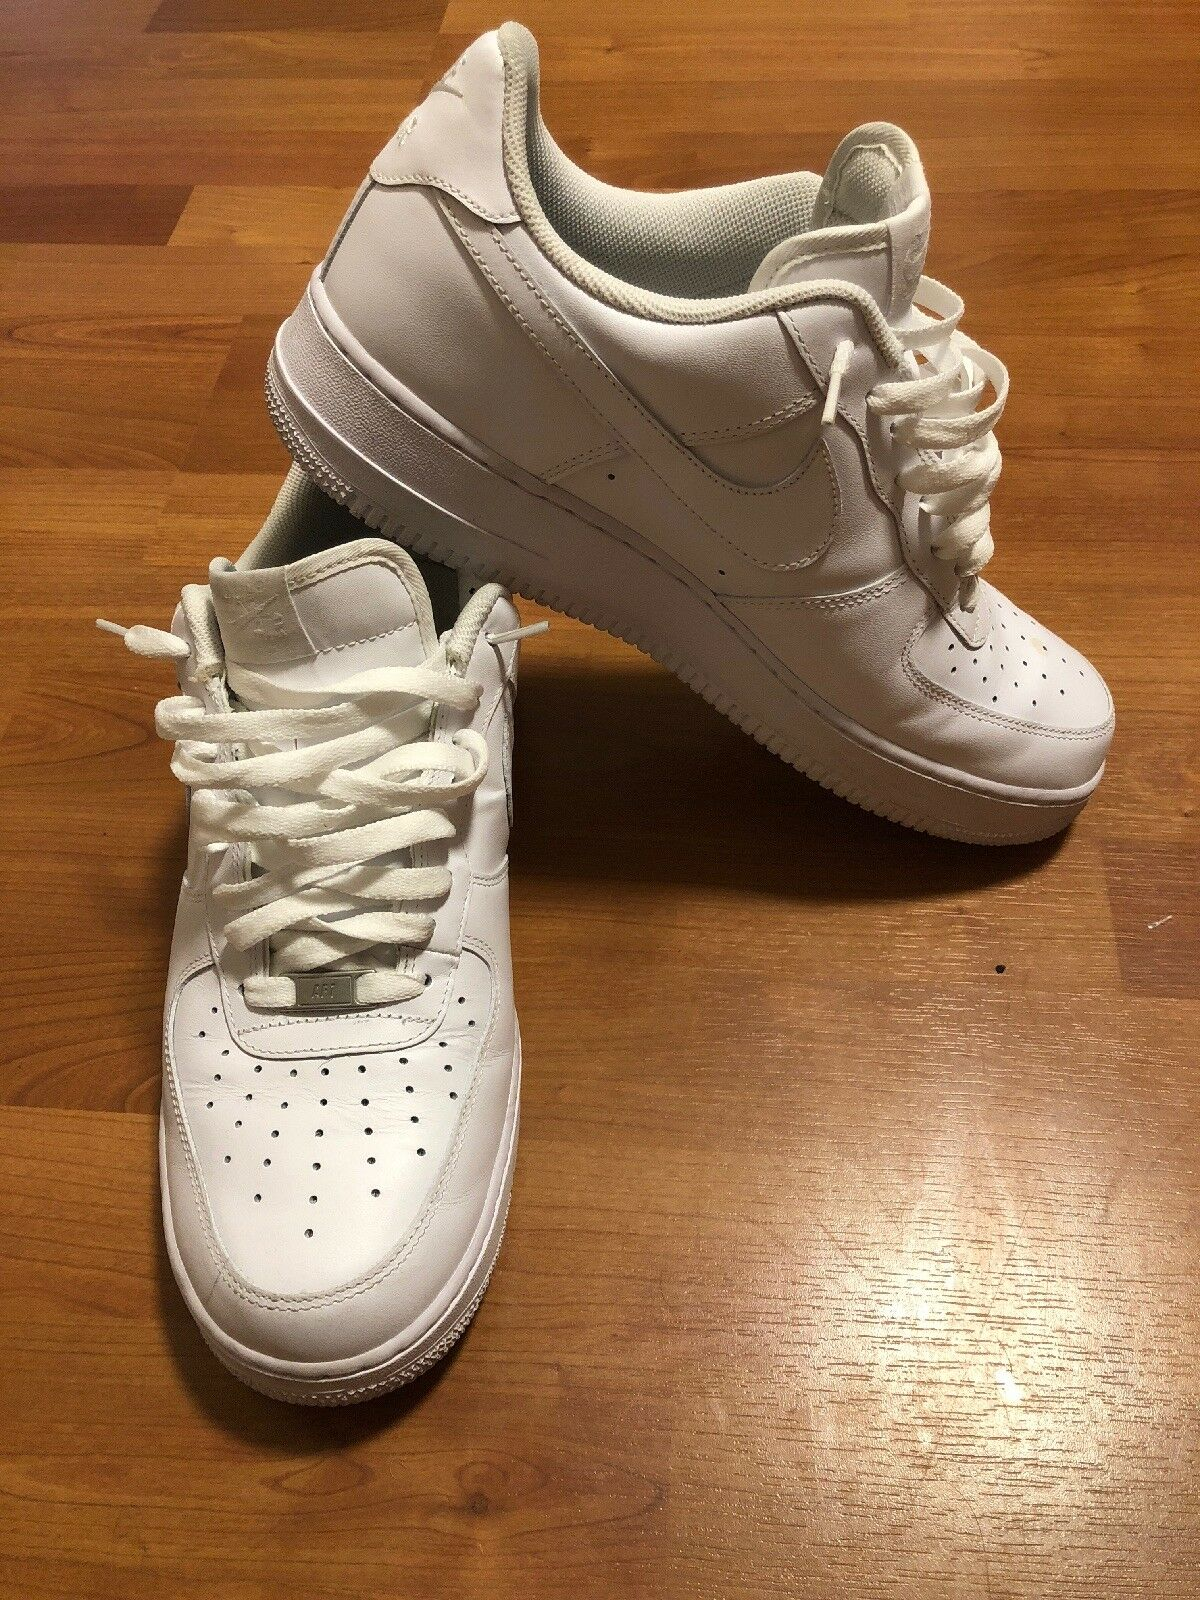 EUC Force 12 One Air Weiß herren Nike 9cea1kzil32141 Neuen Stil